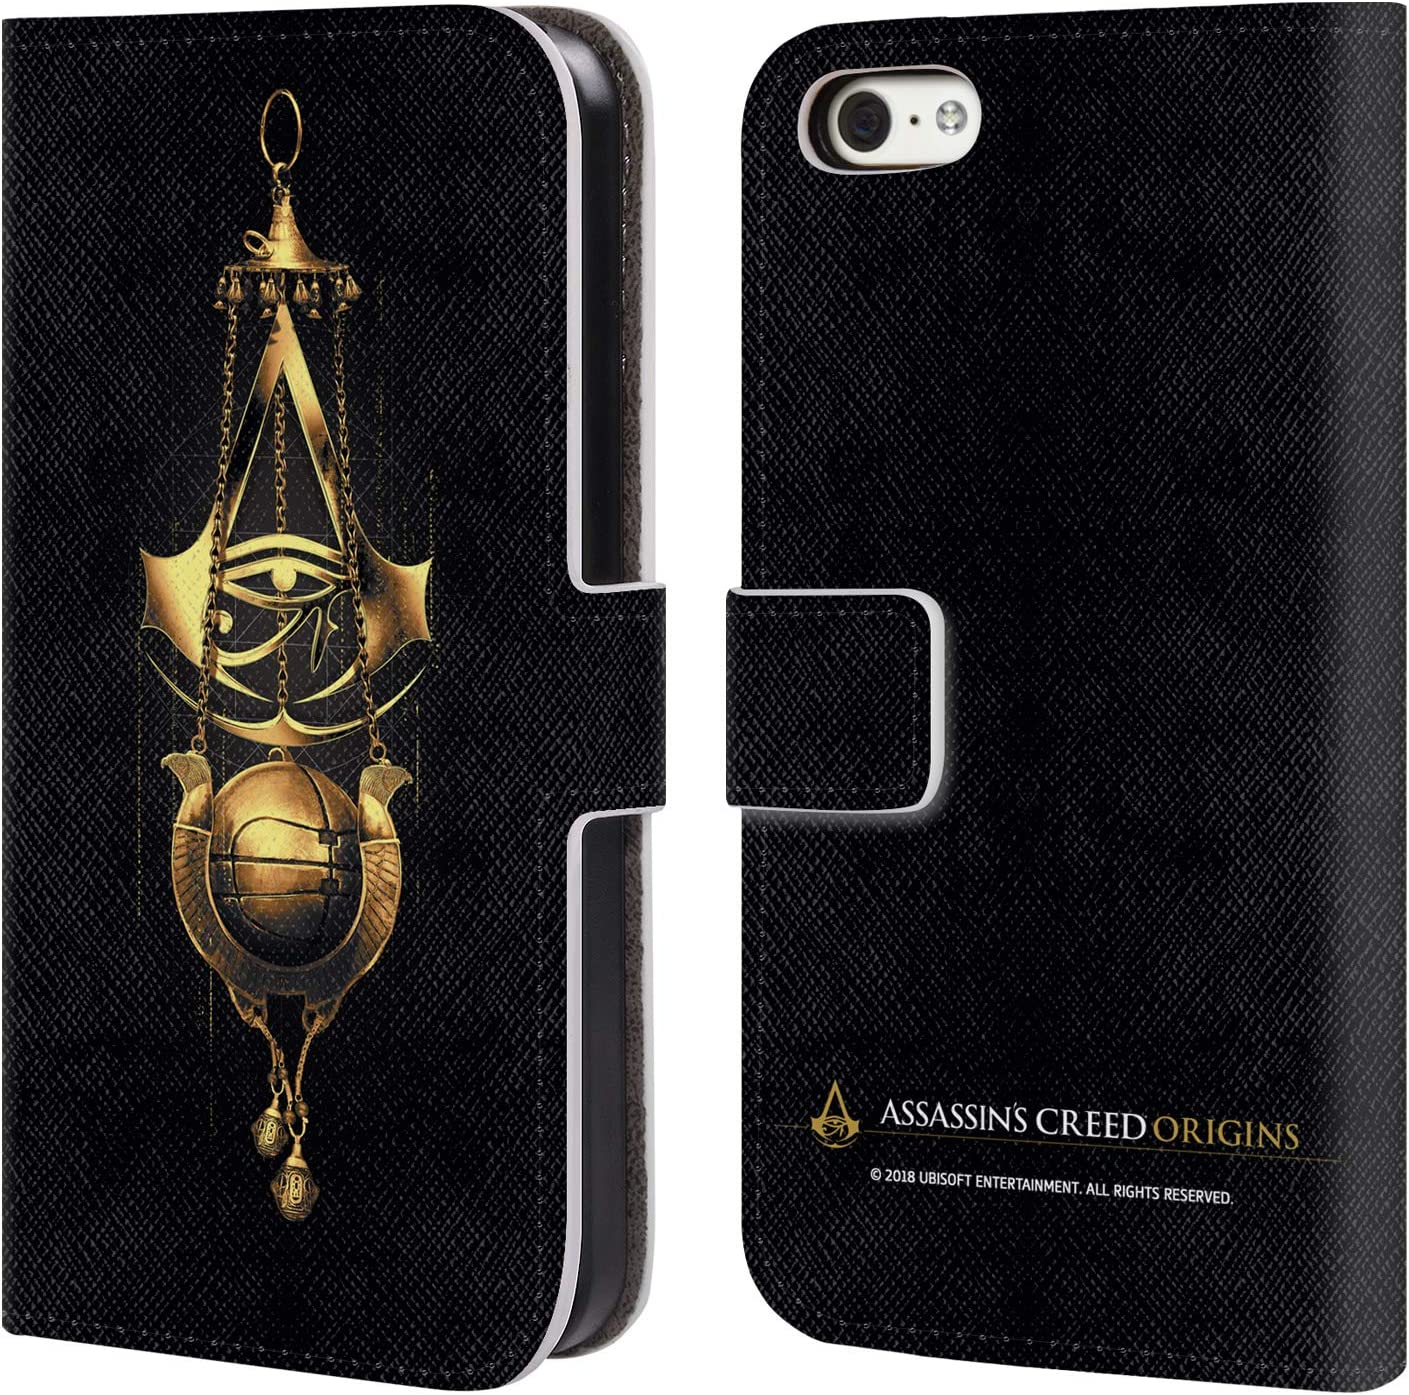 Head Case Designs Officially Licensed Assassin's Creed Piece of Eden Origins Crests Leather Book Wallet Case Cover Compatible with Apple iPhone 5c